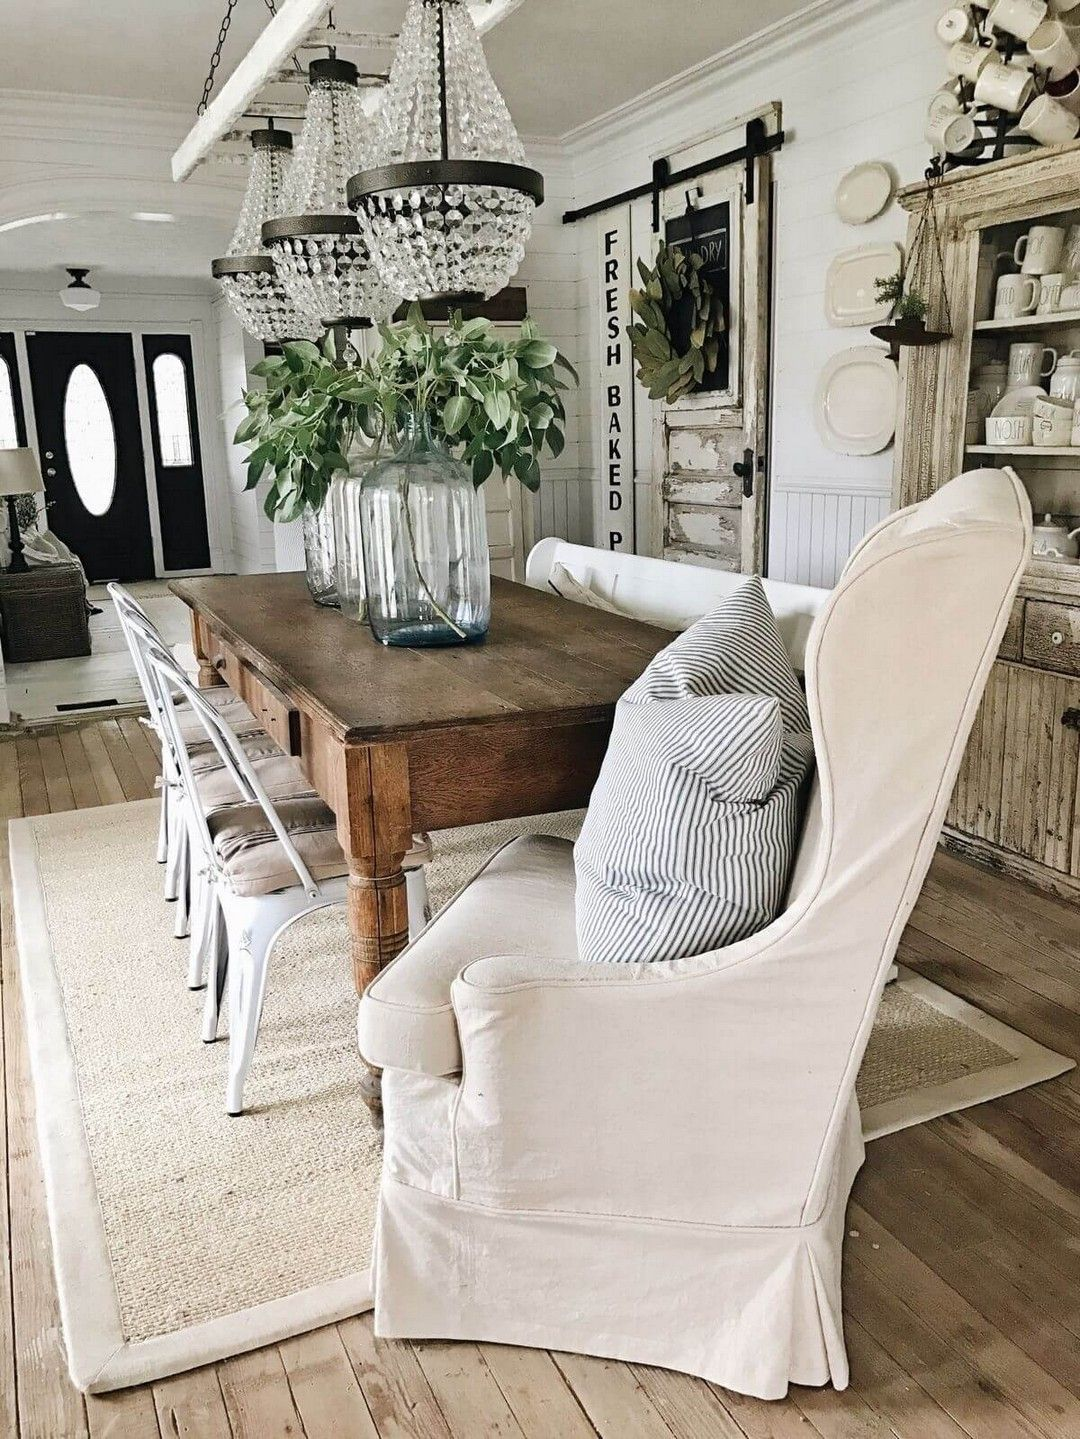 Farmhouse Decorating Style for Living Room and Kitchen